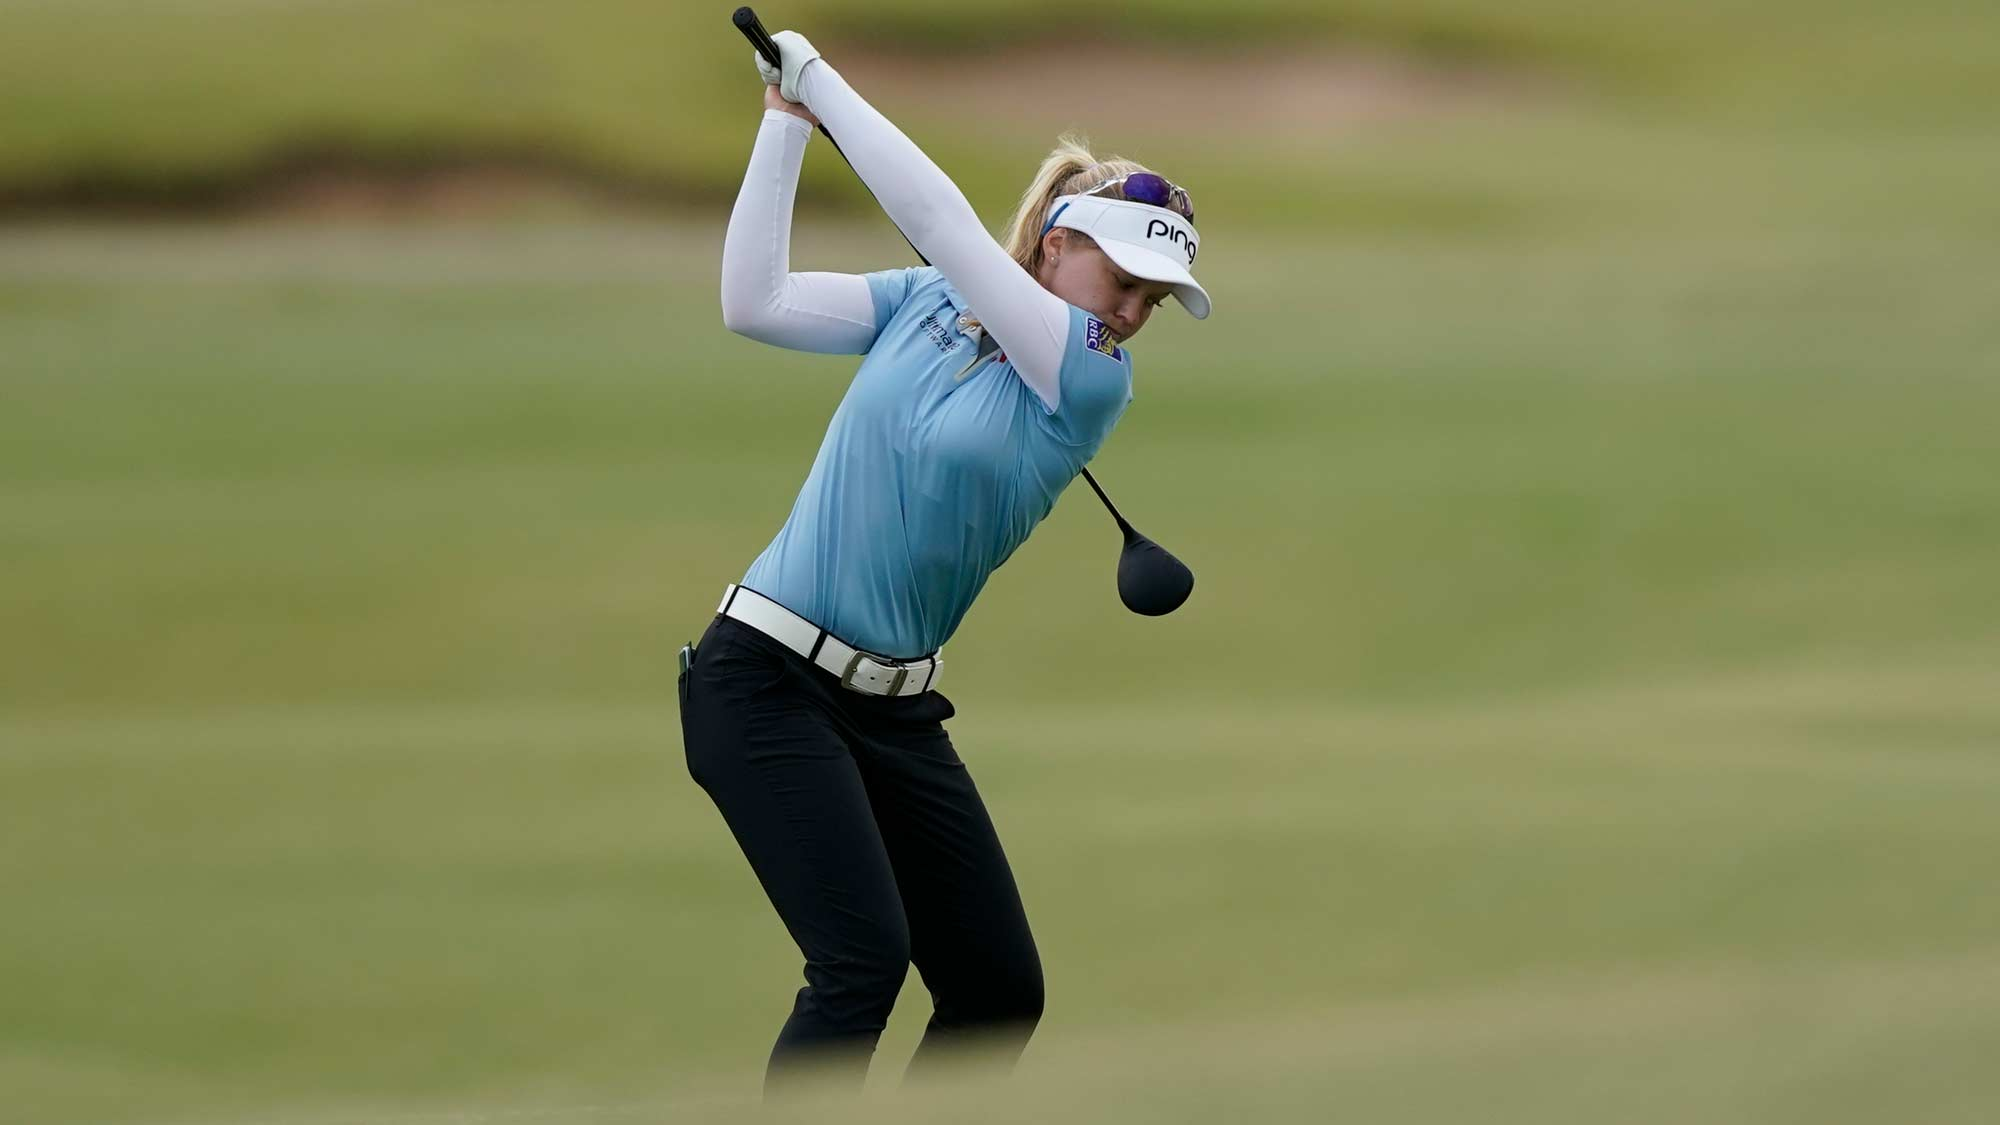 Brooke Henderson in the second round VOA Classic